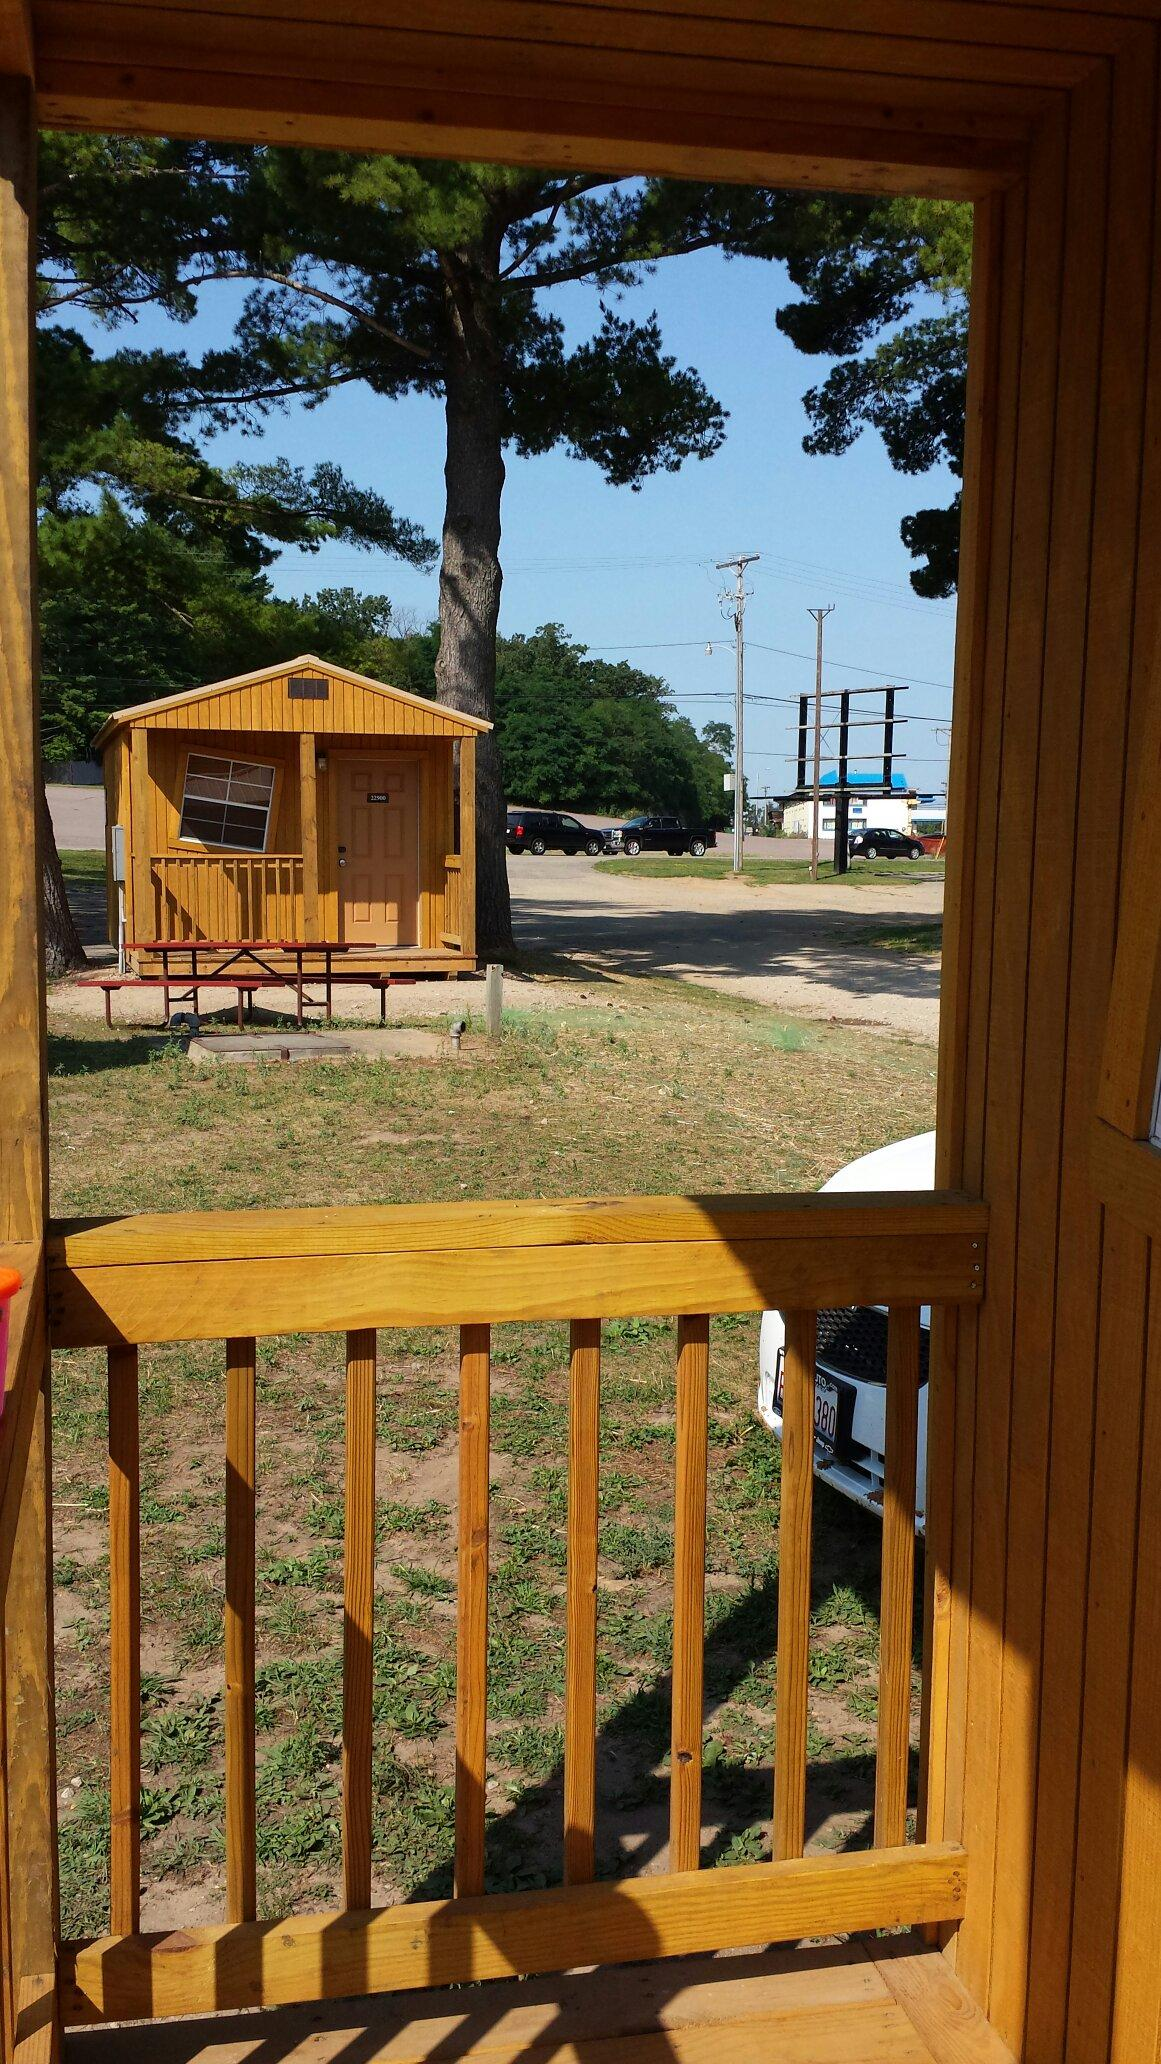 Mt Olympus Camp Resort Wisconsin Dells Wi 2017 Review